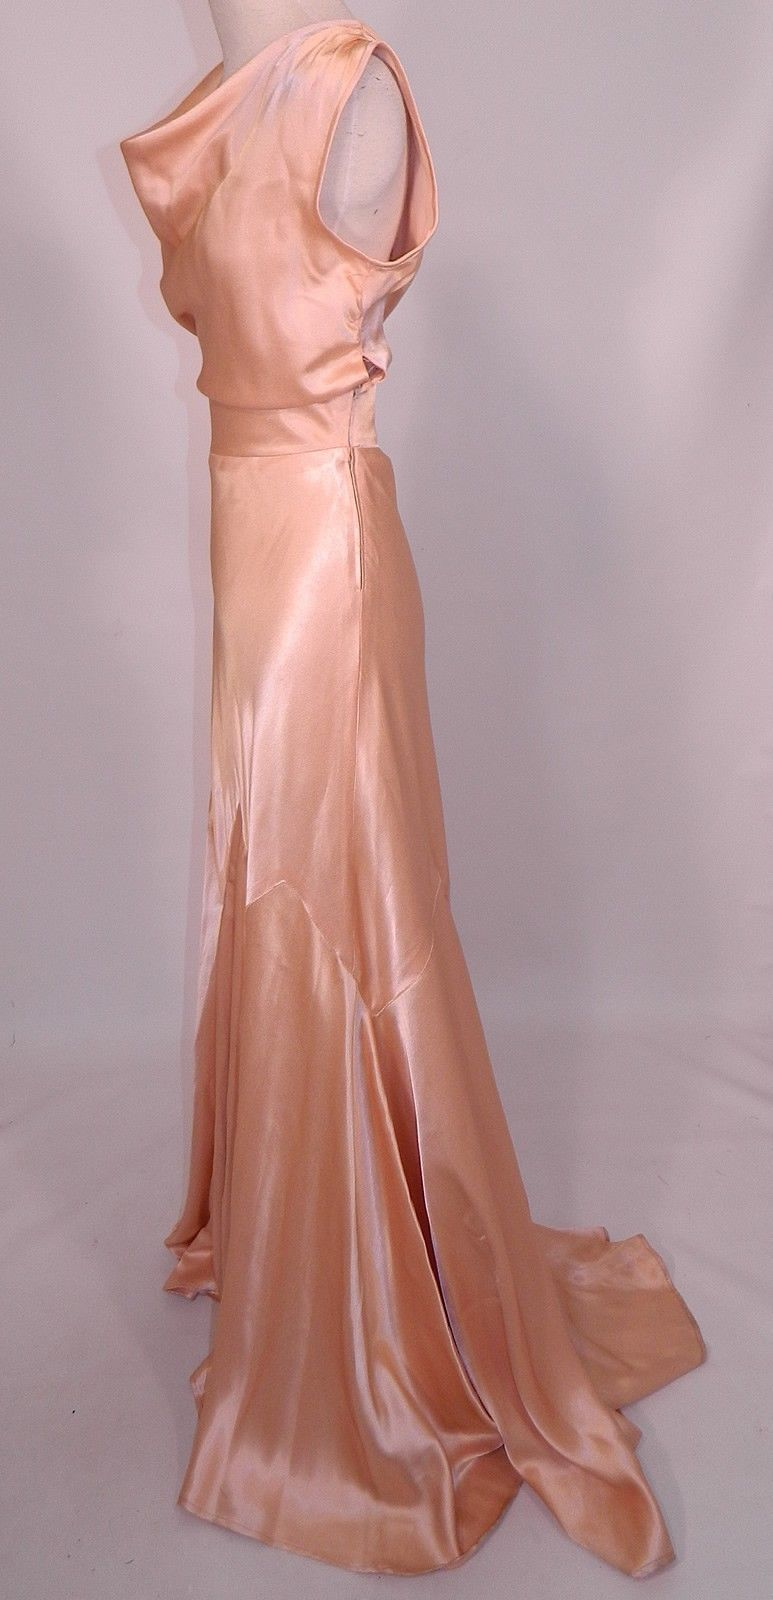 Vintage 1930s Peach Pastel Silk Satin Bias Cut Dress Evening Gown ...